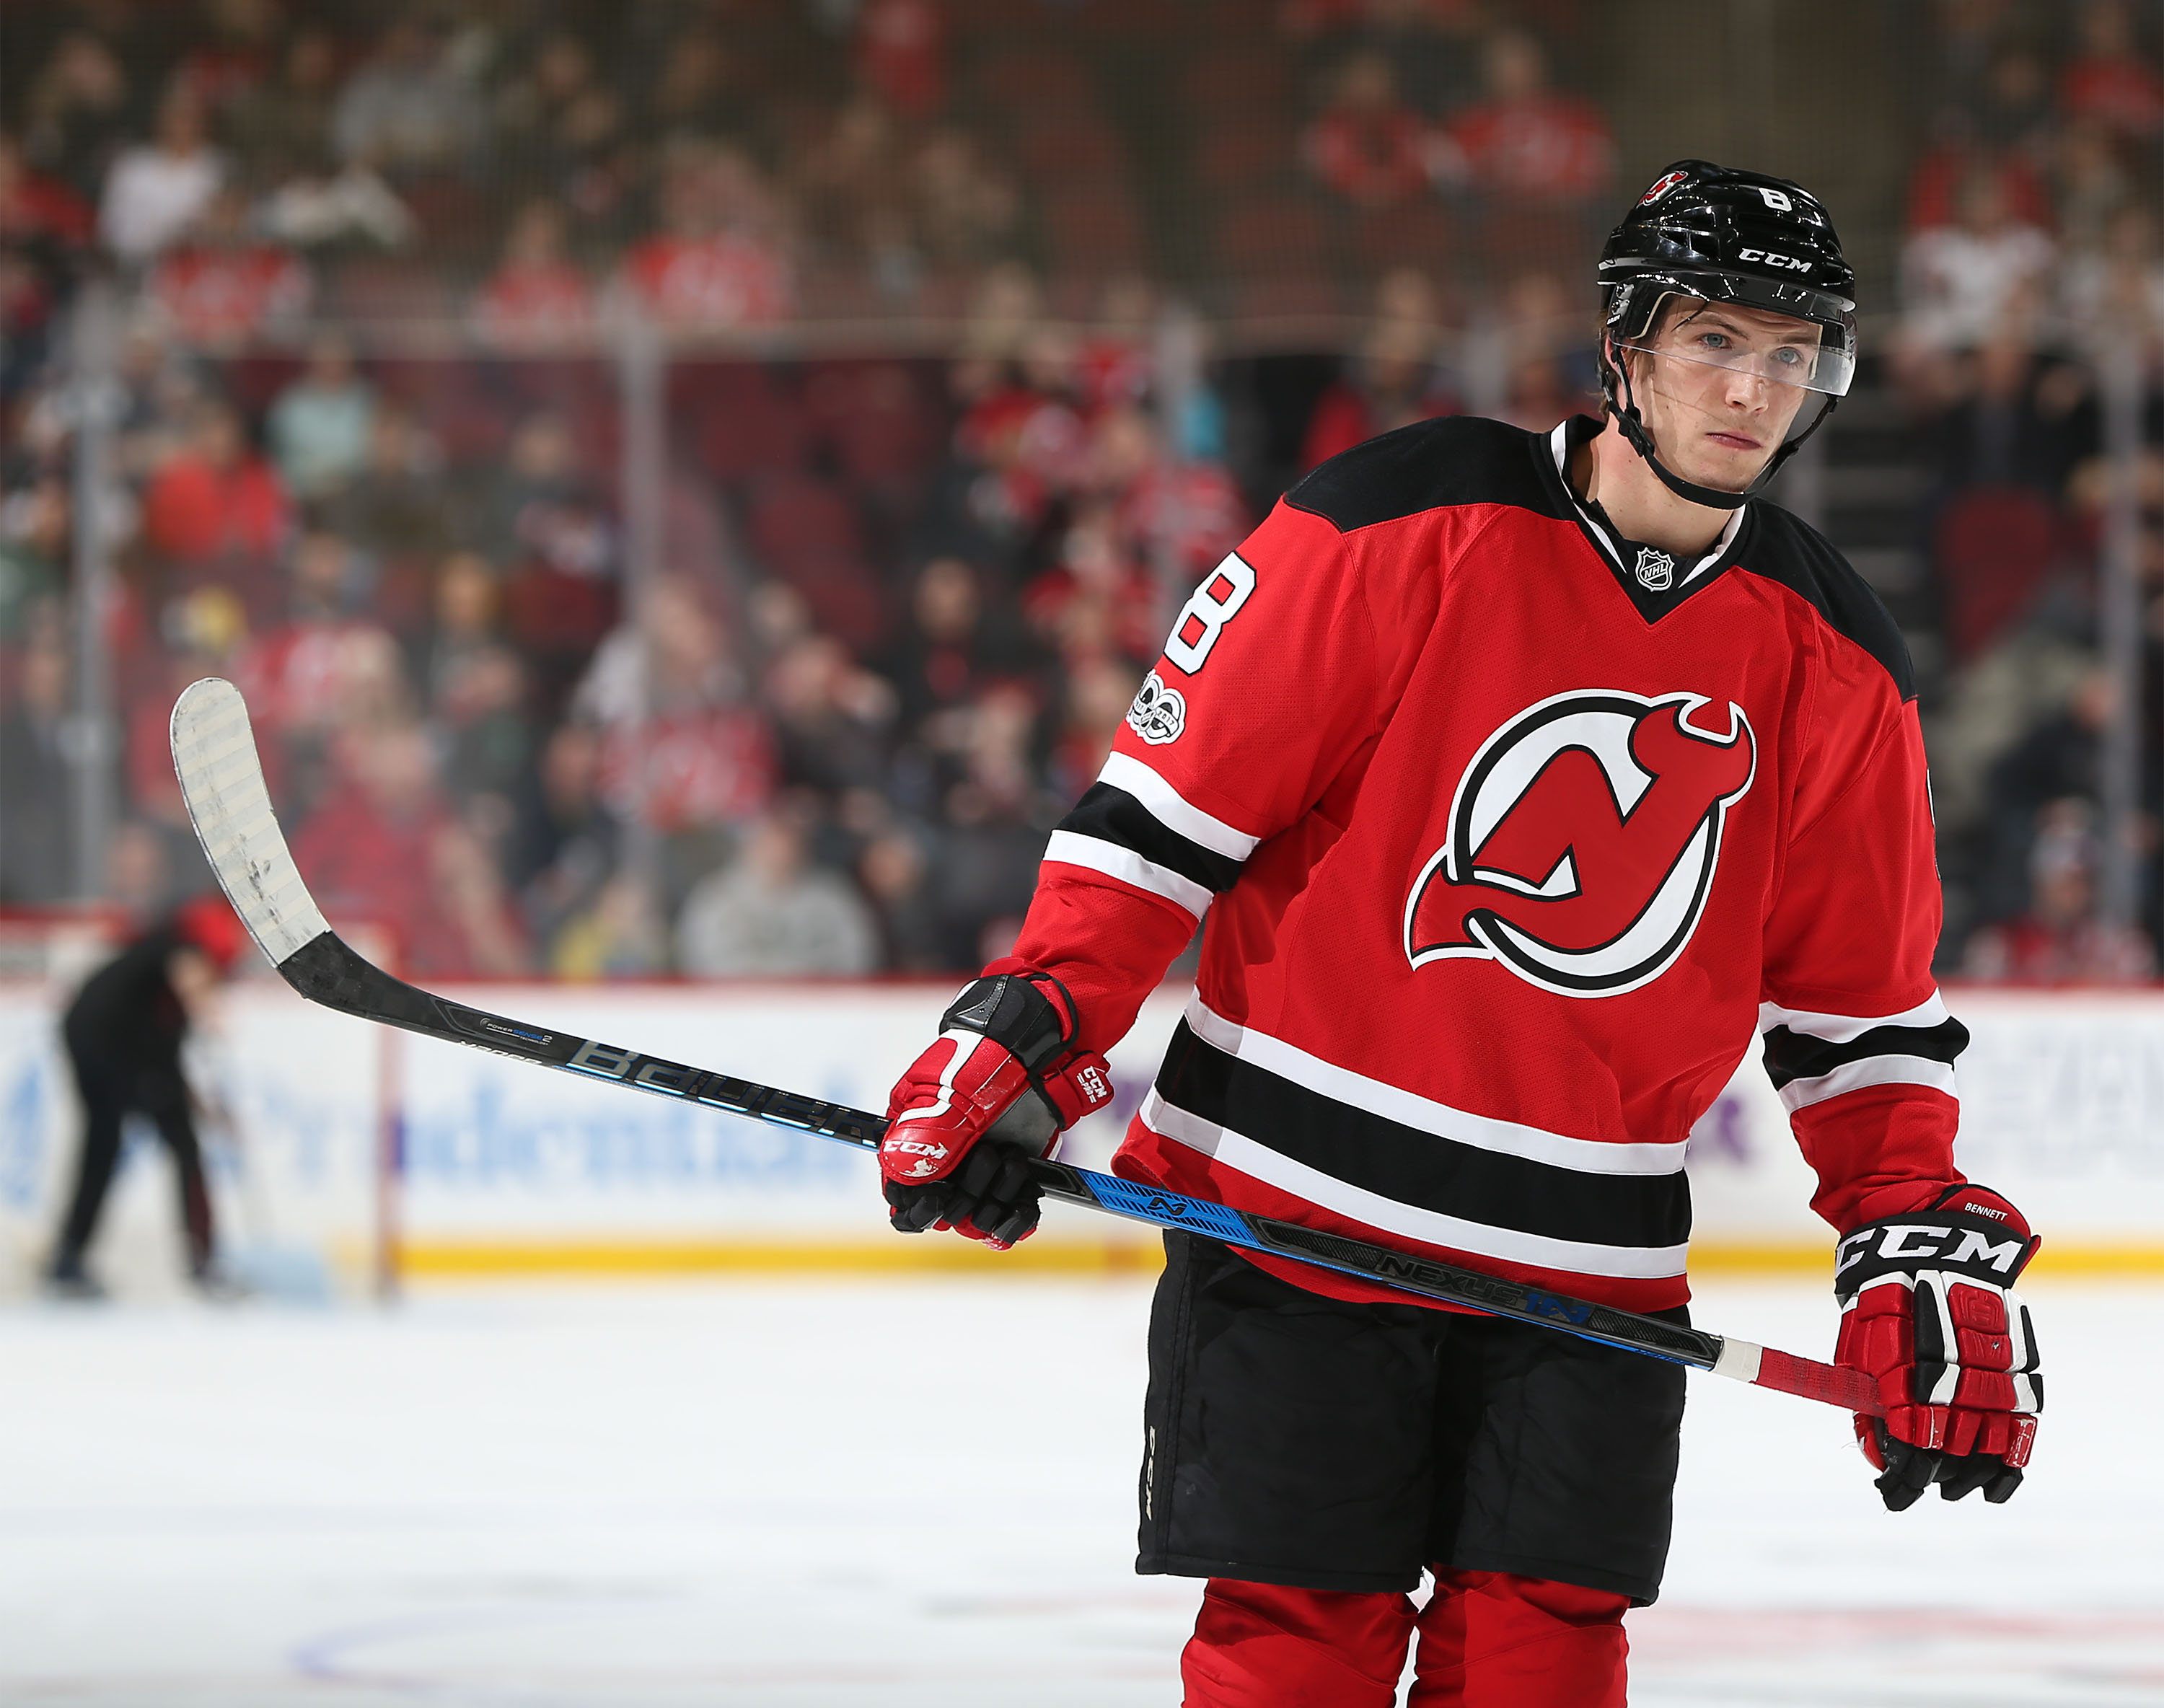 New Jersey Devils: Beau Bennett Was A Failed Trial We Can't Explain